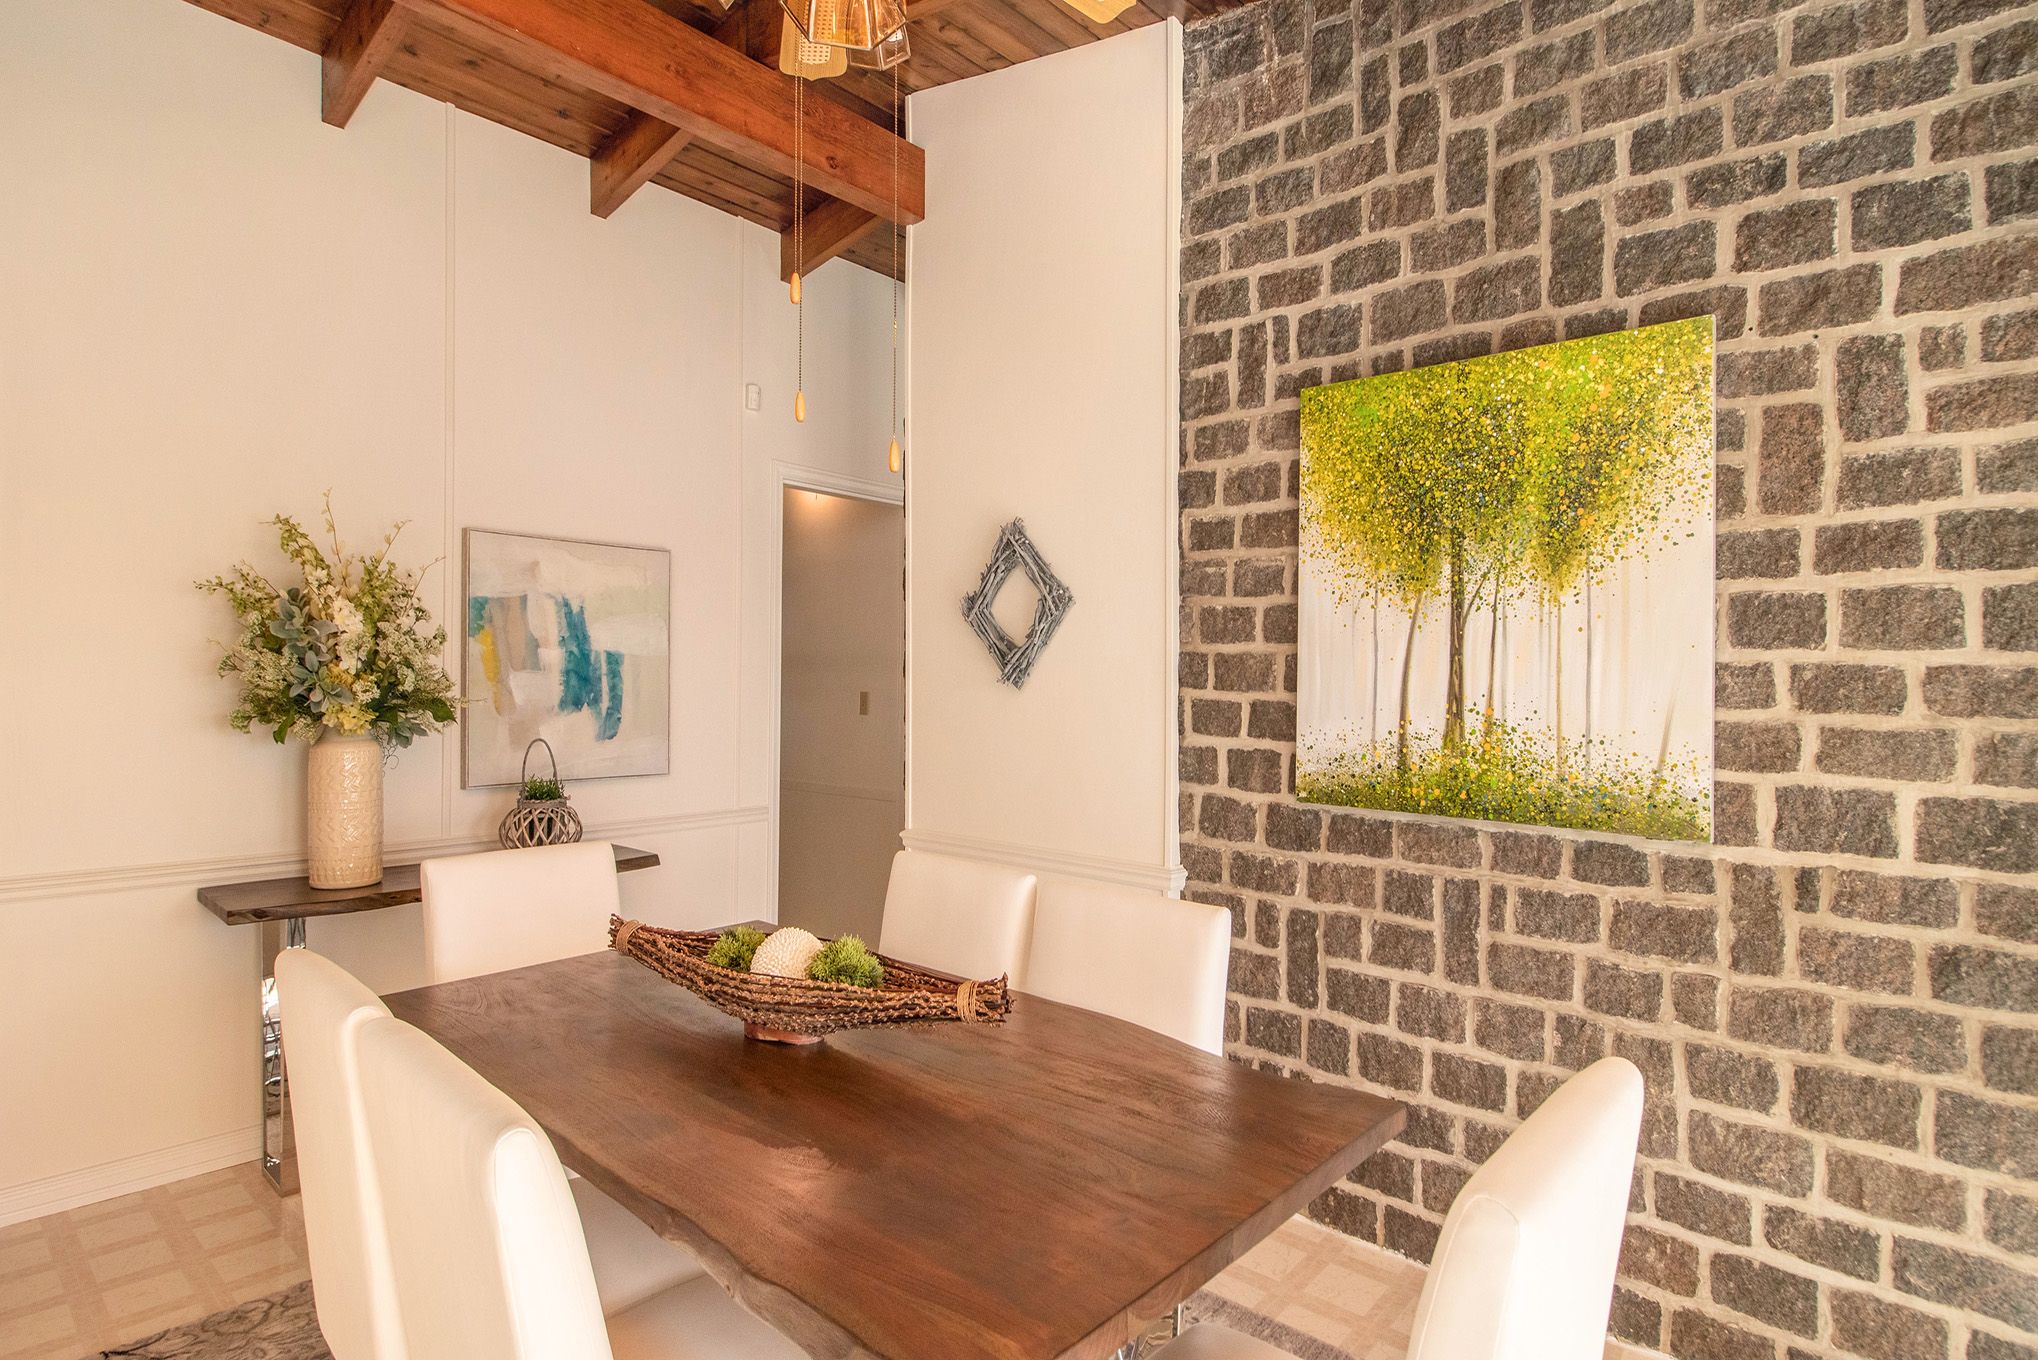 Stunning views of the water, spacious dining area with gorgeous brick accent wall, and gorgeous wooden ceilings.